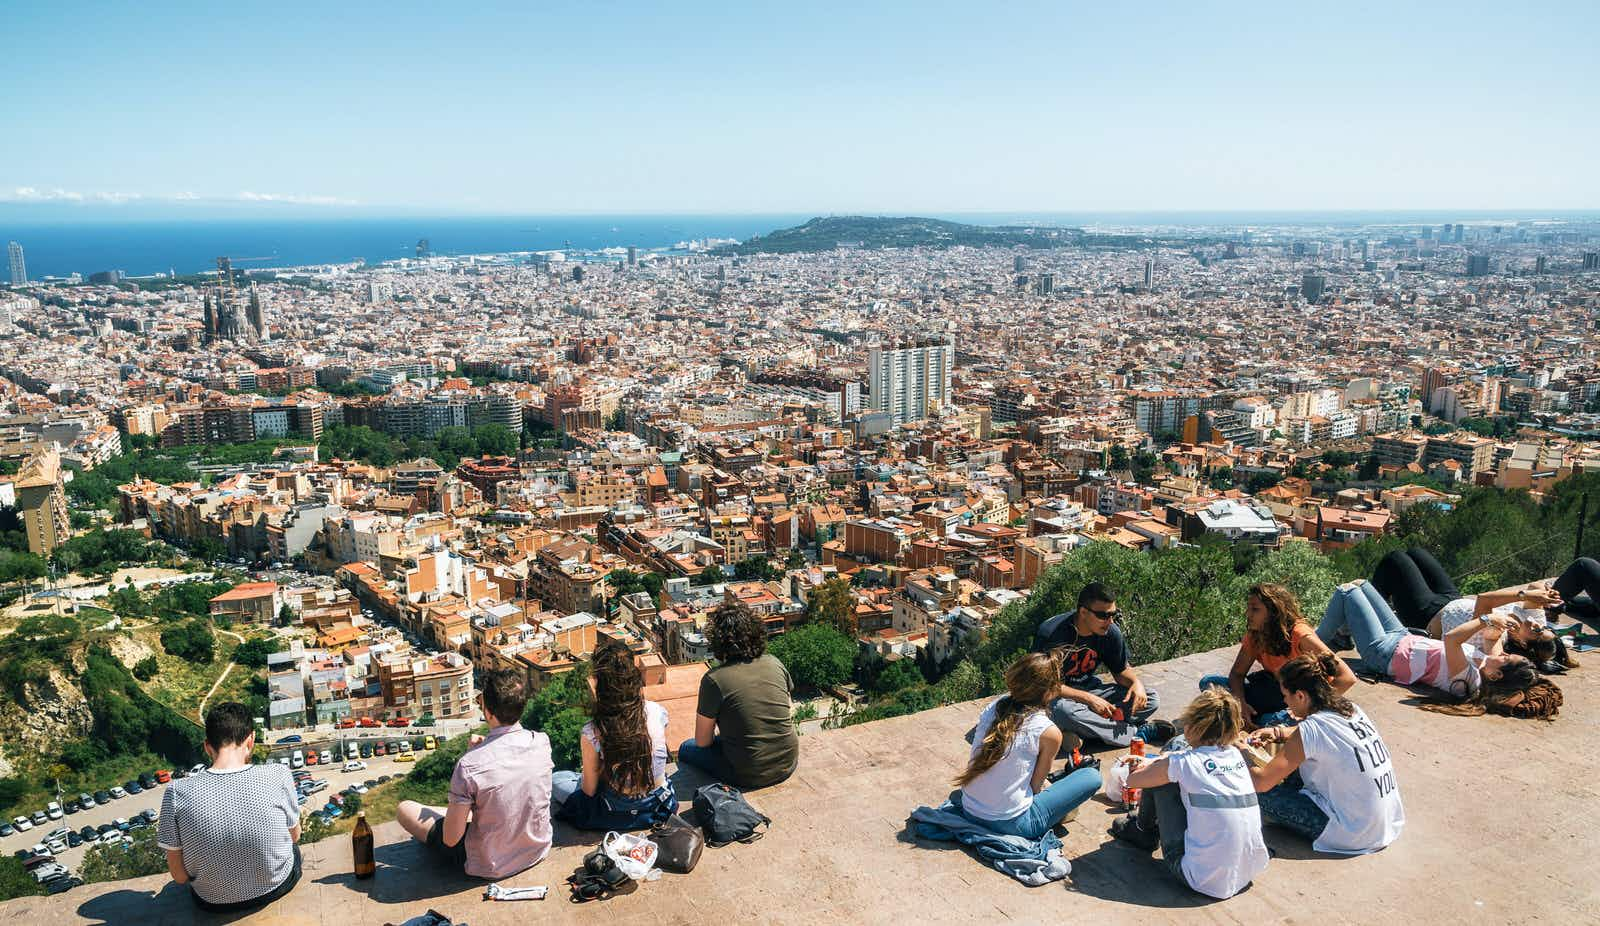 Take your teens to Bunker El Carmel, a popular spot with Instagrammers looking for the perfect Barcelona panorama © Andrei Bortnikau / Shutterstock